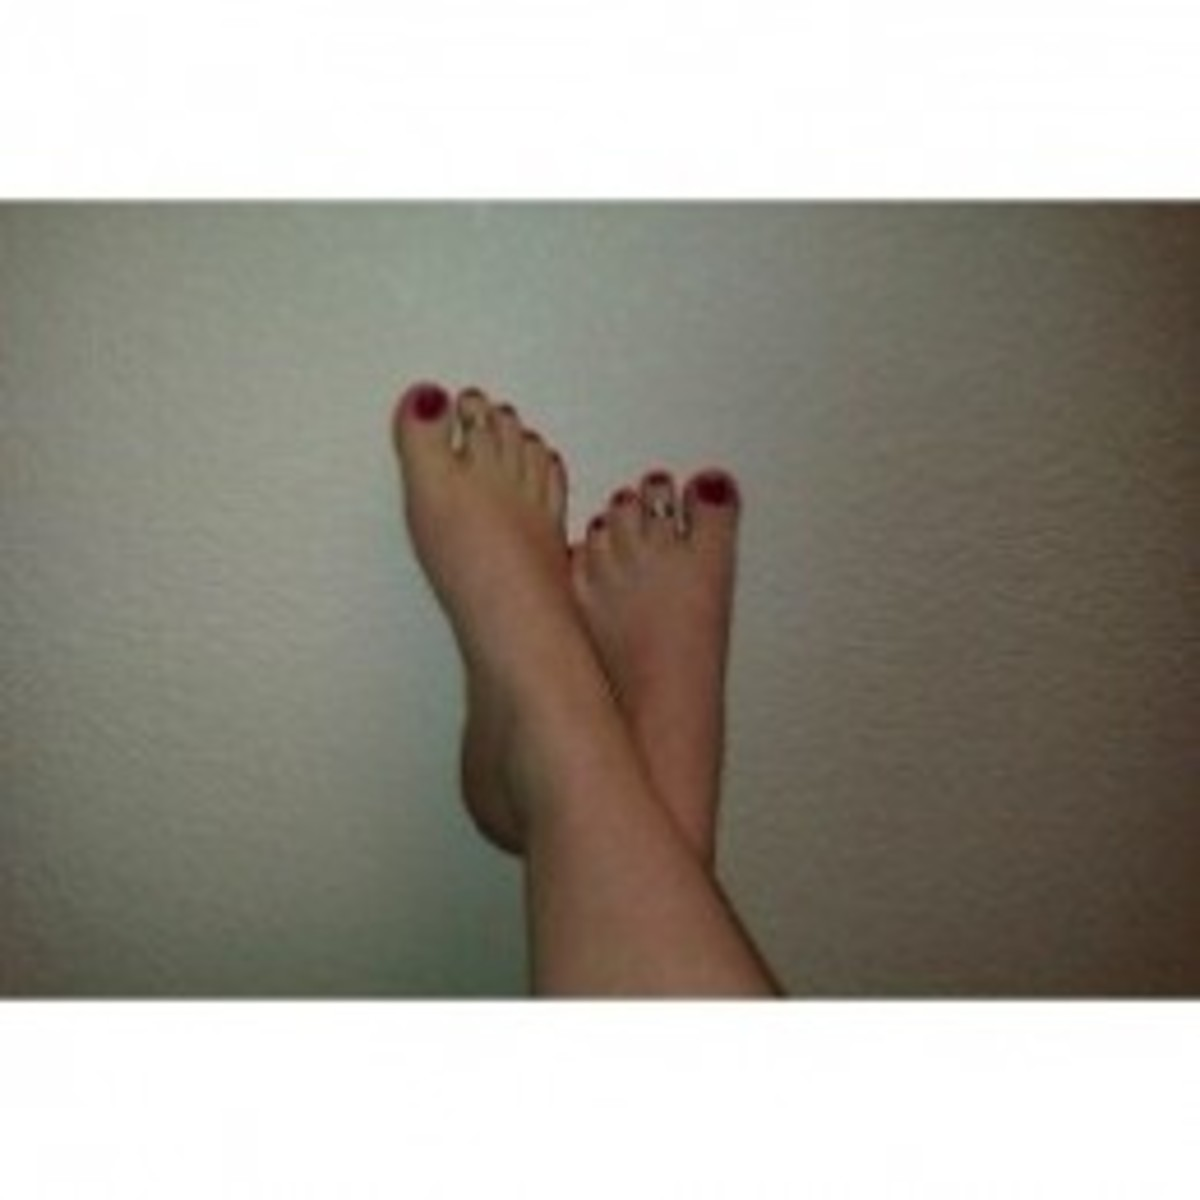 An example of perfect feet that any Foot fetisher should have in their collection...